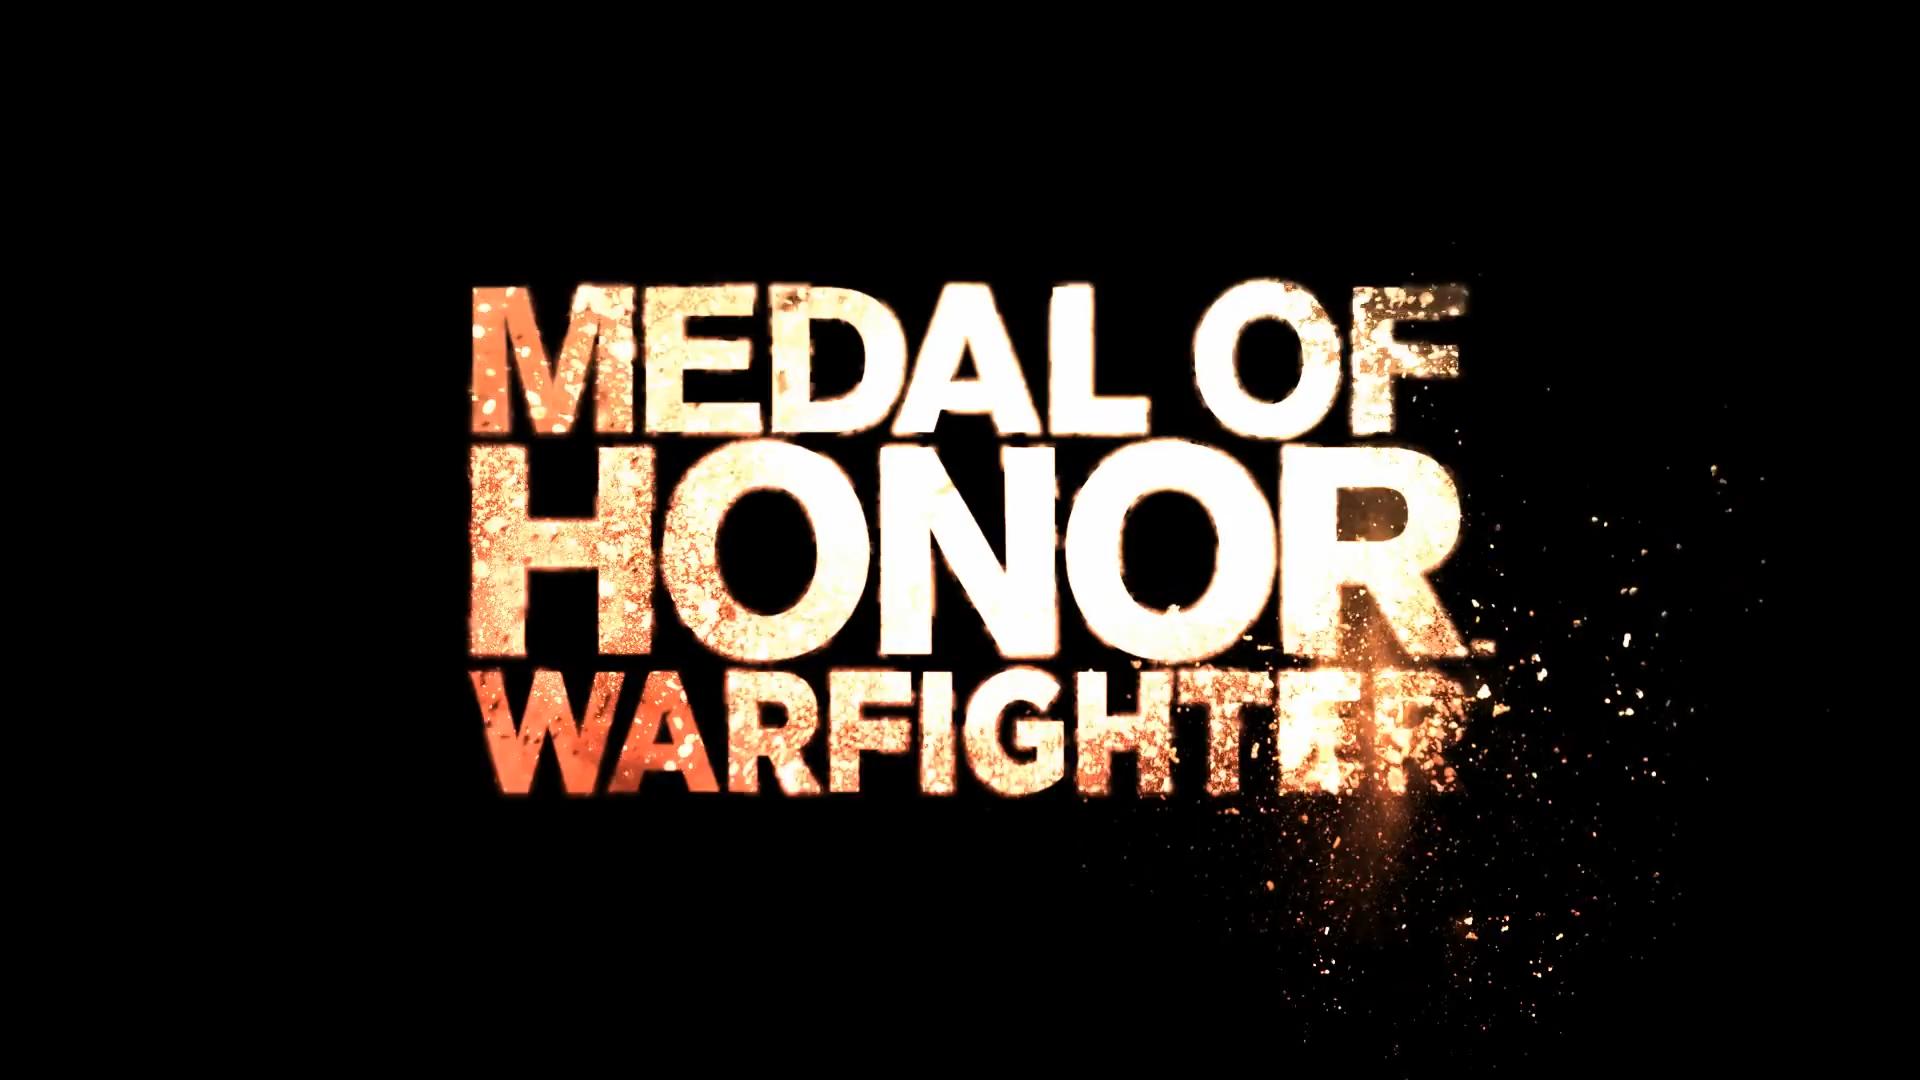 Medal of Honor: Warfighter [Trailer e imagenes (NUEVO) ]